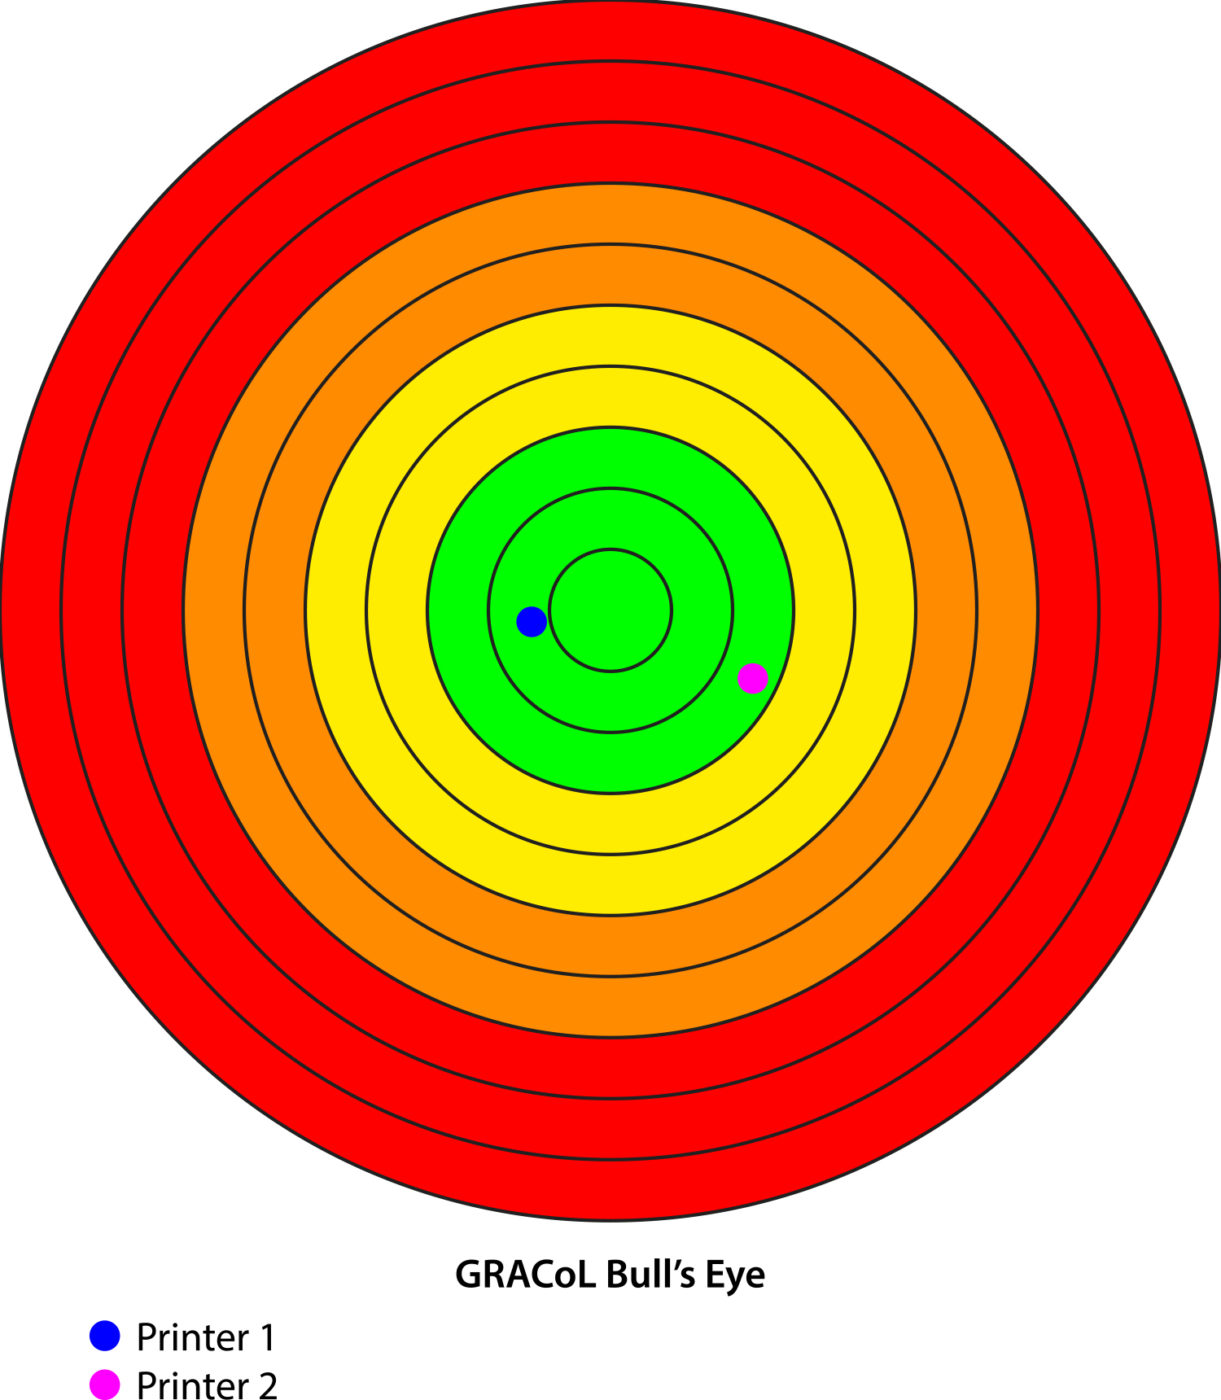 Image of GRACoL Bull's Eye